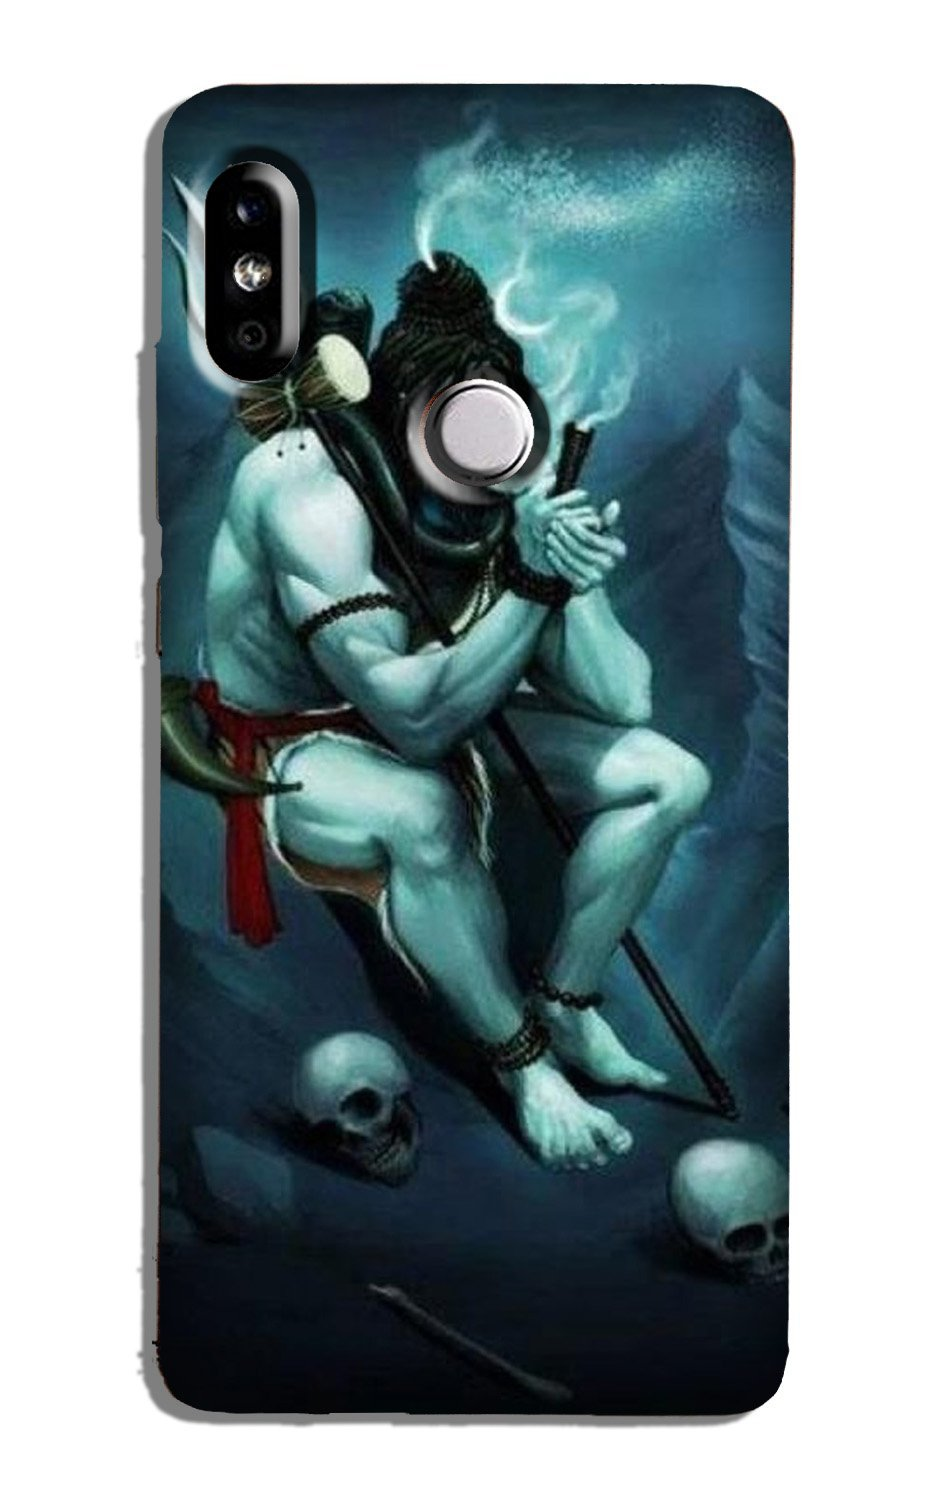 Lord Shiva Mahakal  Case for Redmi Note 5 Pro